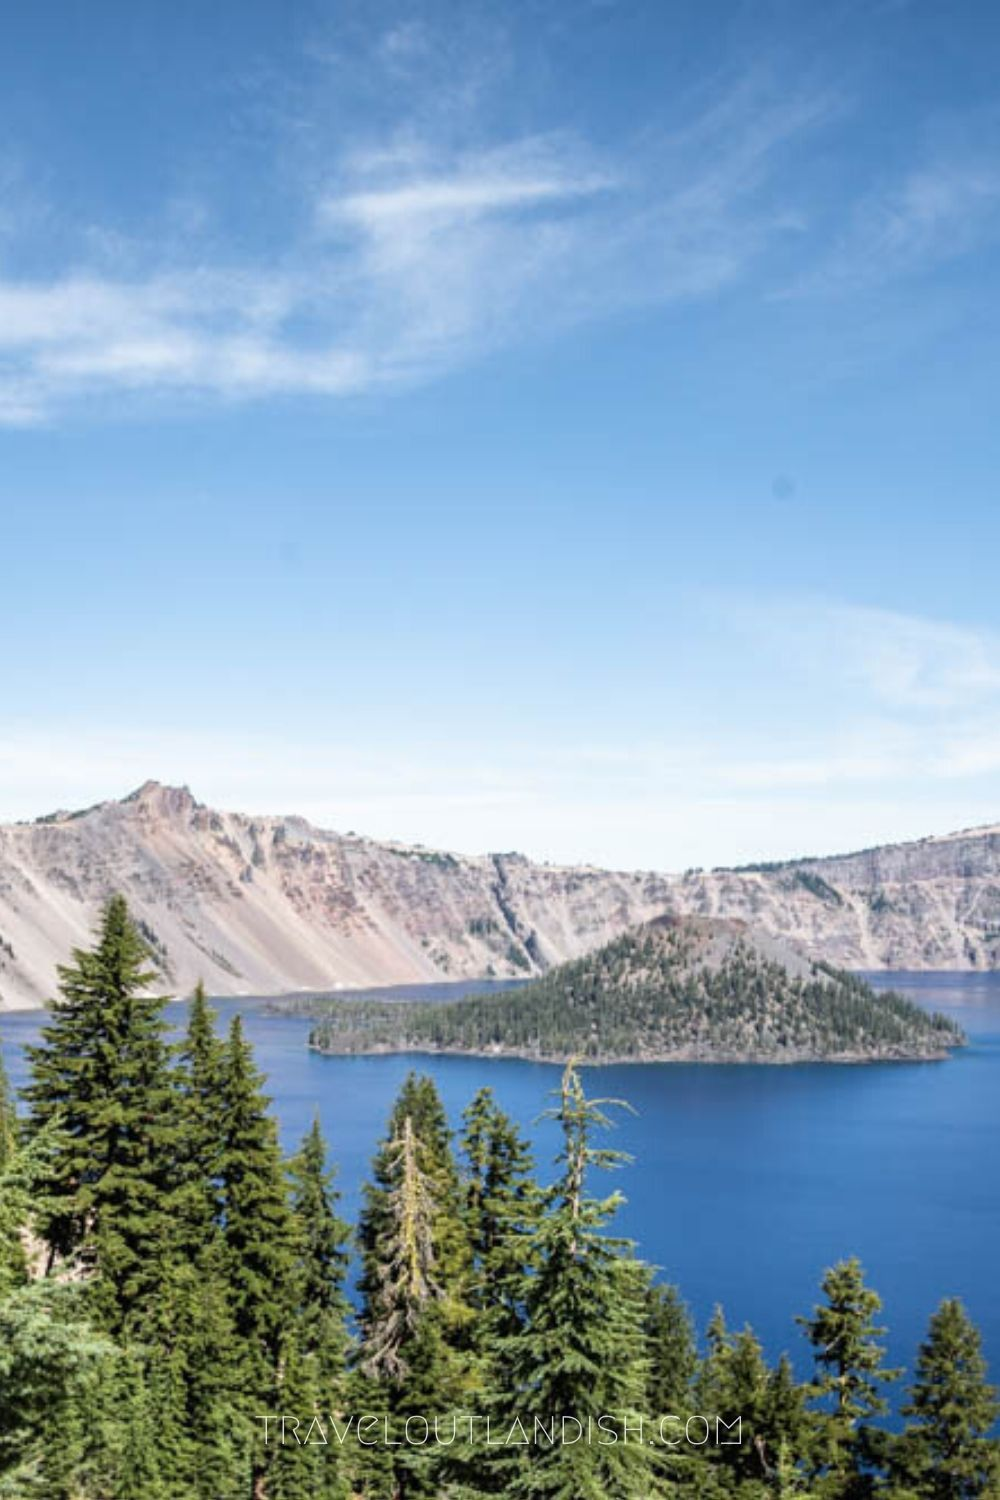 An Outlandish Guide + Things to do in Crater Lake - Travel Outlandish